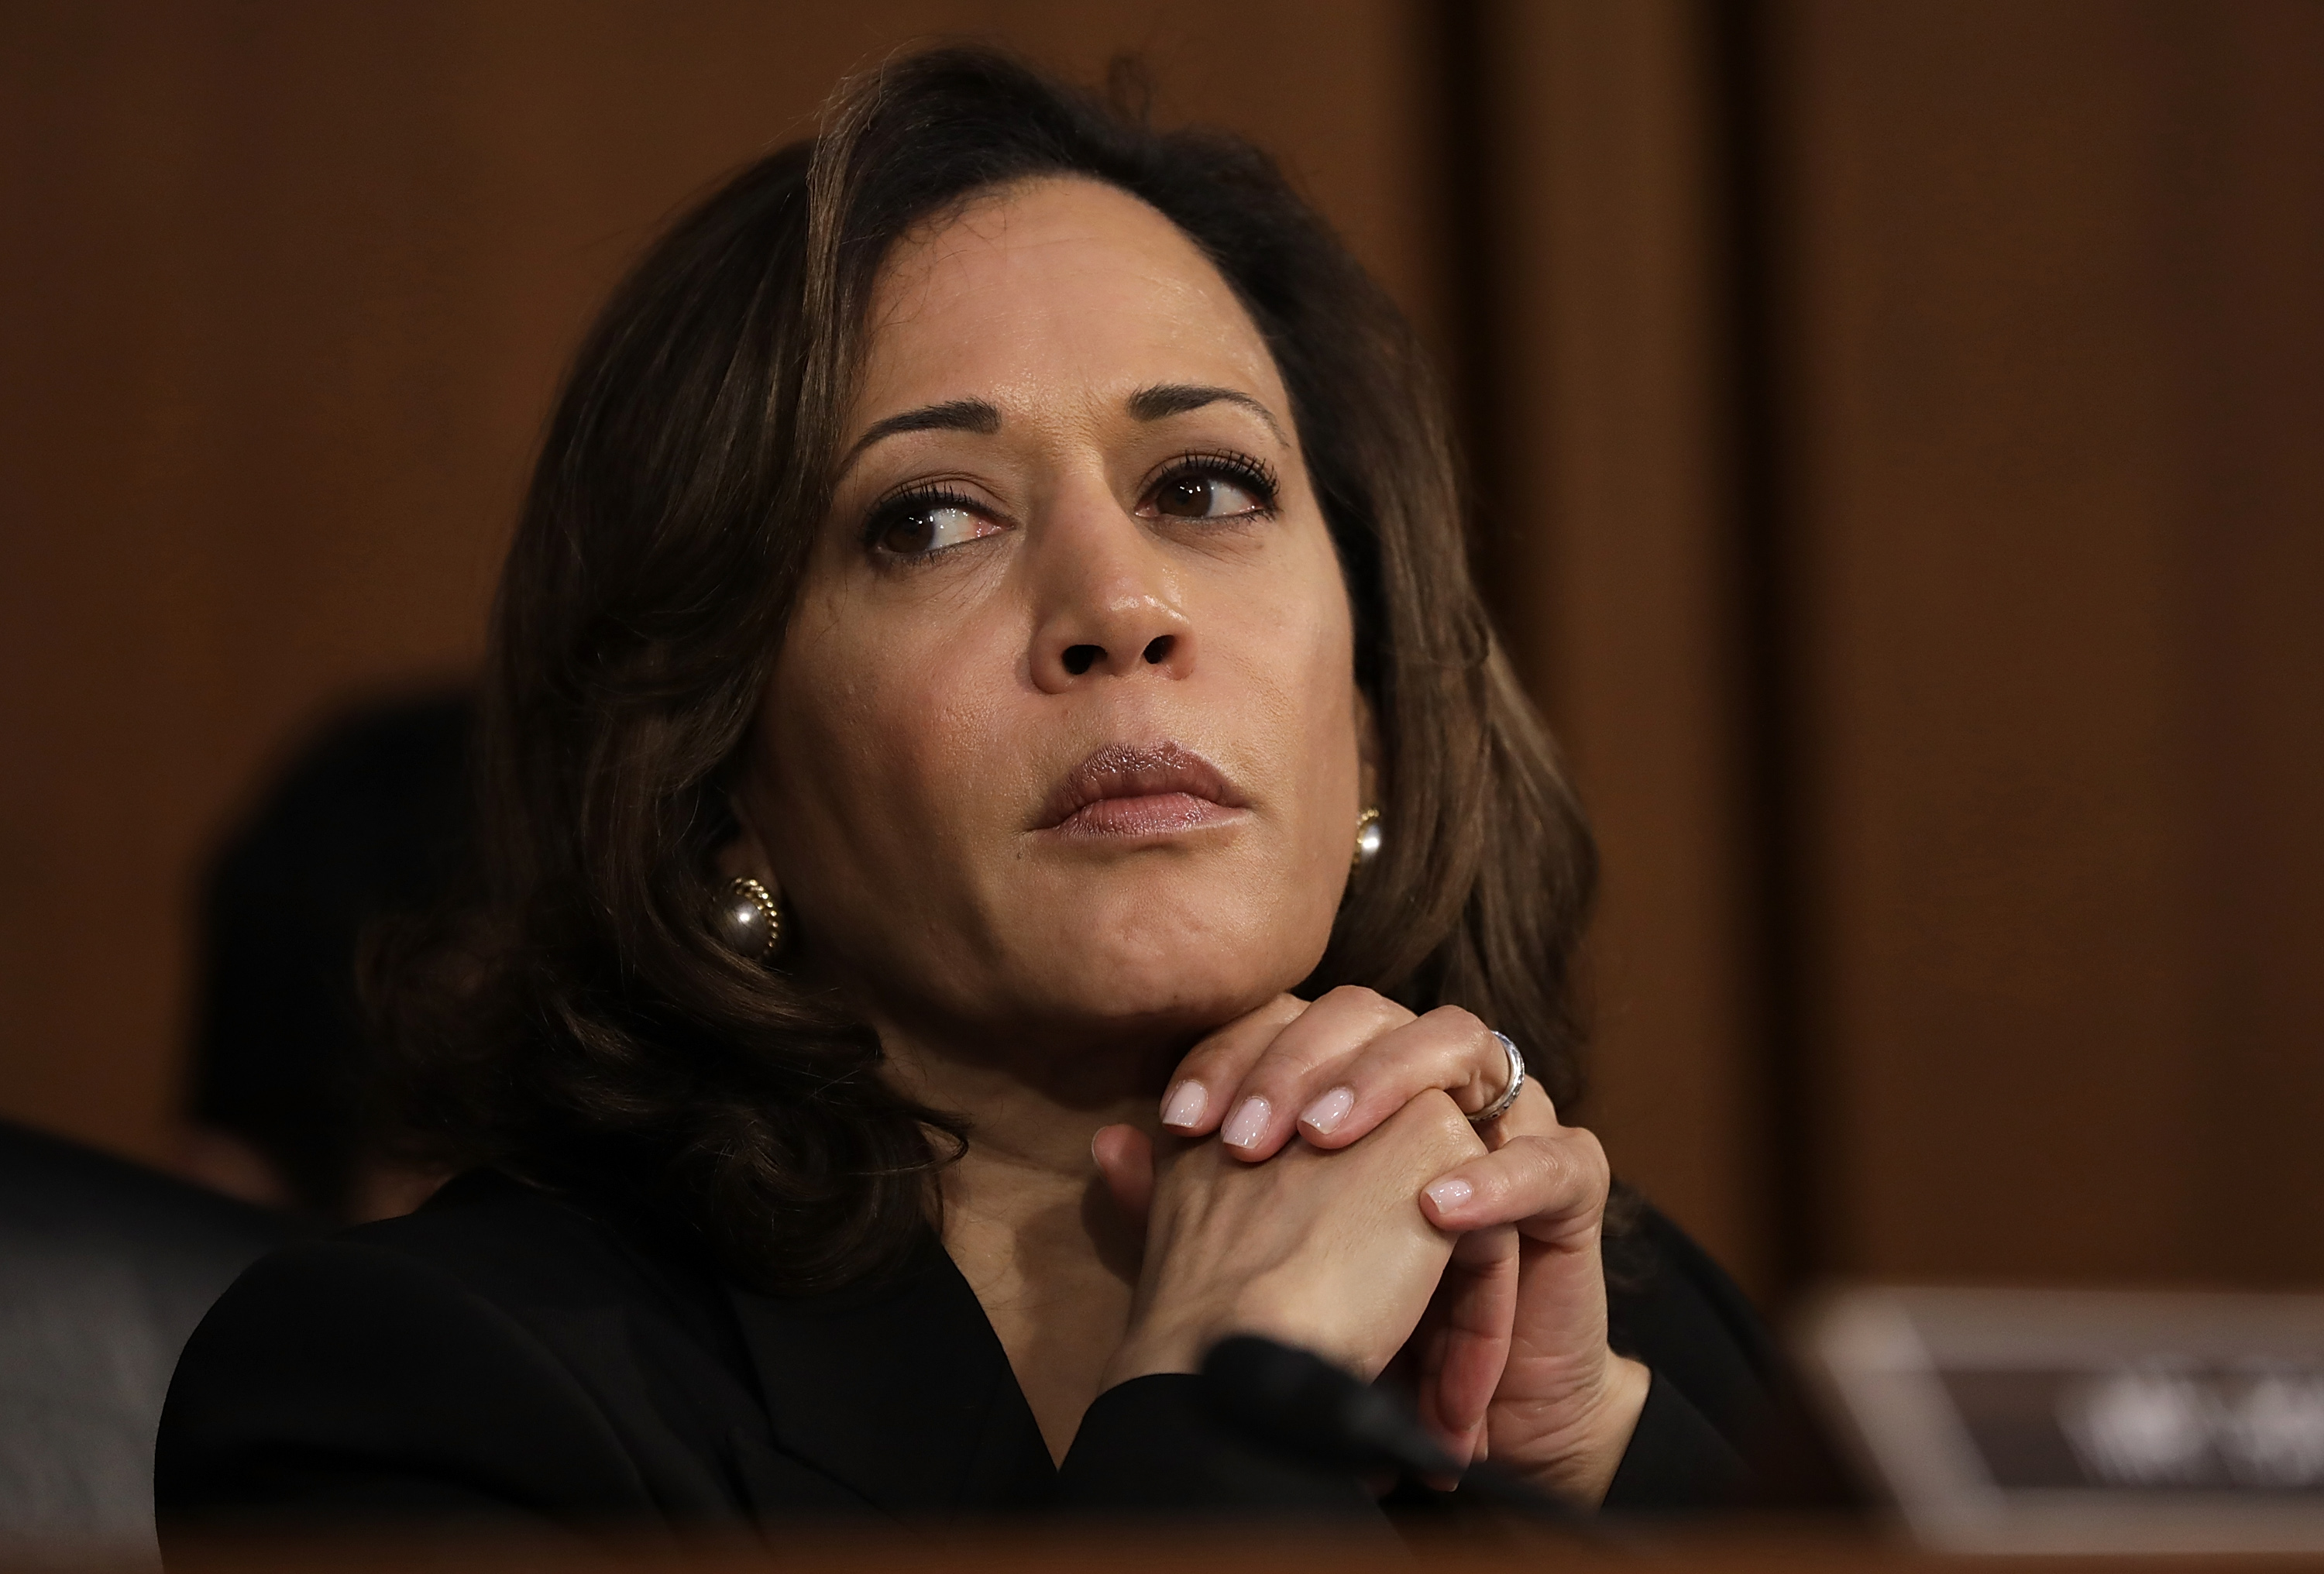 ICYMI: CNN: Kamala Harris supported 2008 San Francisco policy that reported arrested undocumented juveniles to ICE